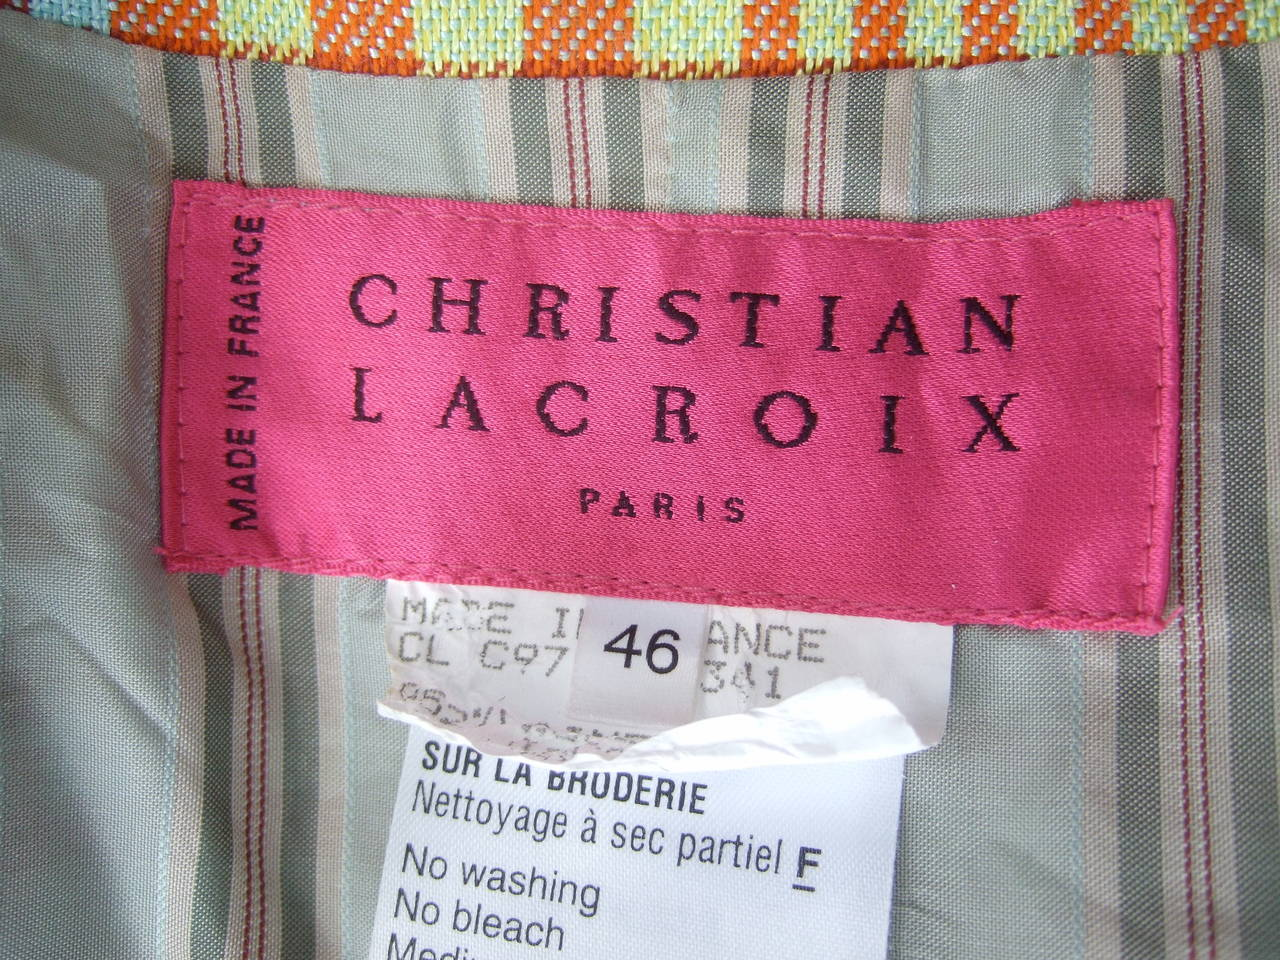 Christian Lacroix Paris Plaid Wool Jacket Size 46 c 1990 For Sale 1